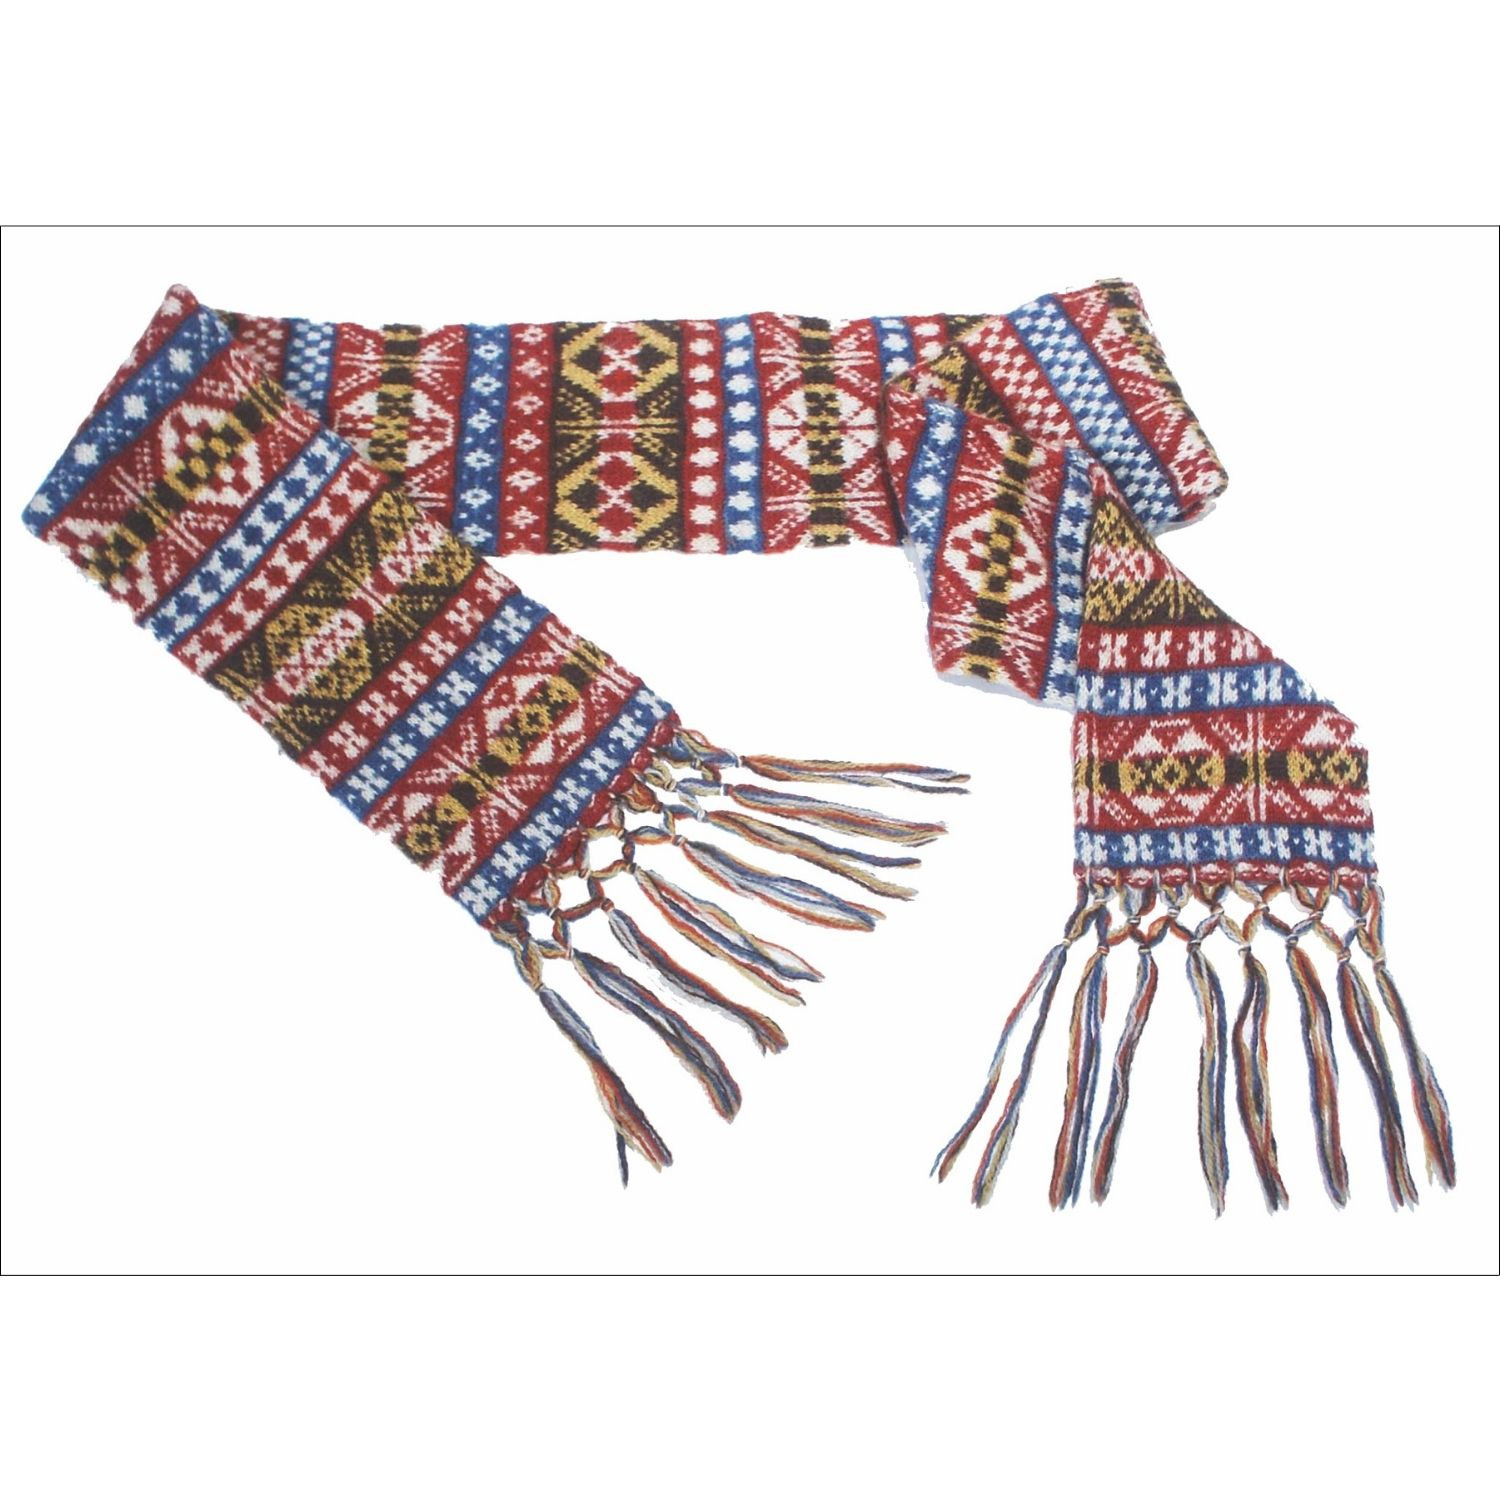 Woolen scarf square